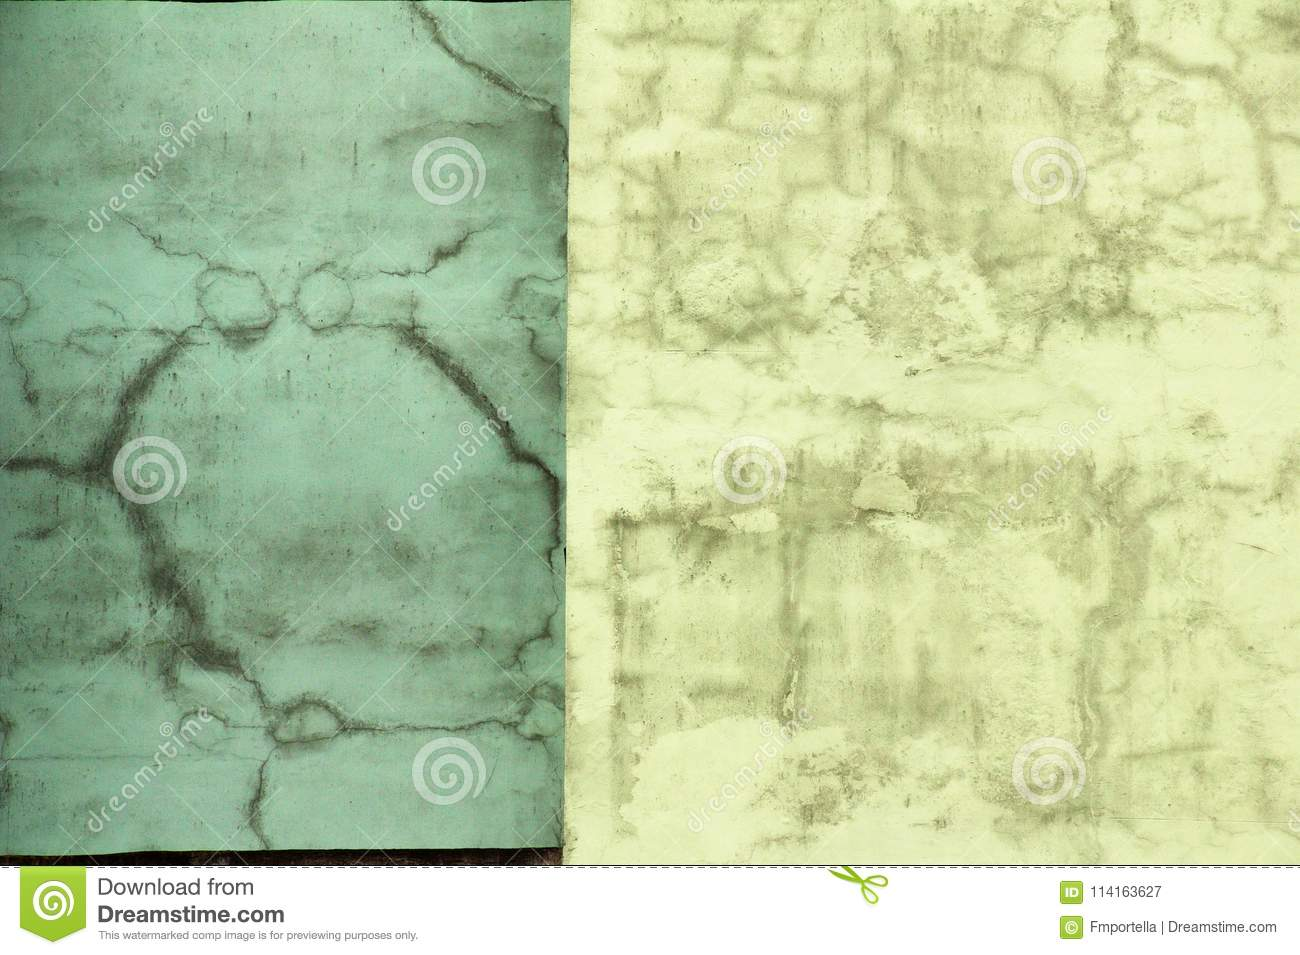 Worn Out Two Color Plastered Wall Stock Image - Image of walls ...